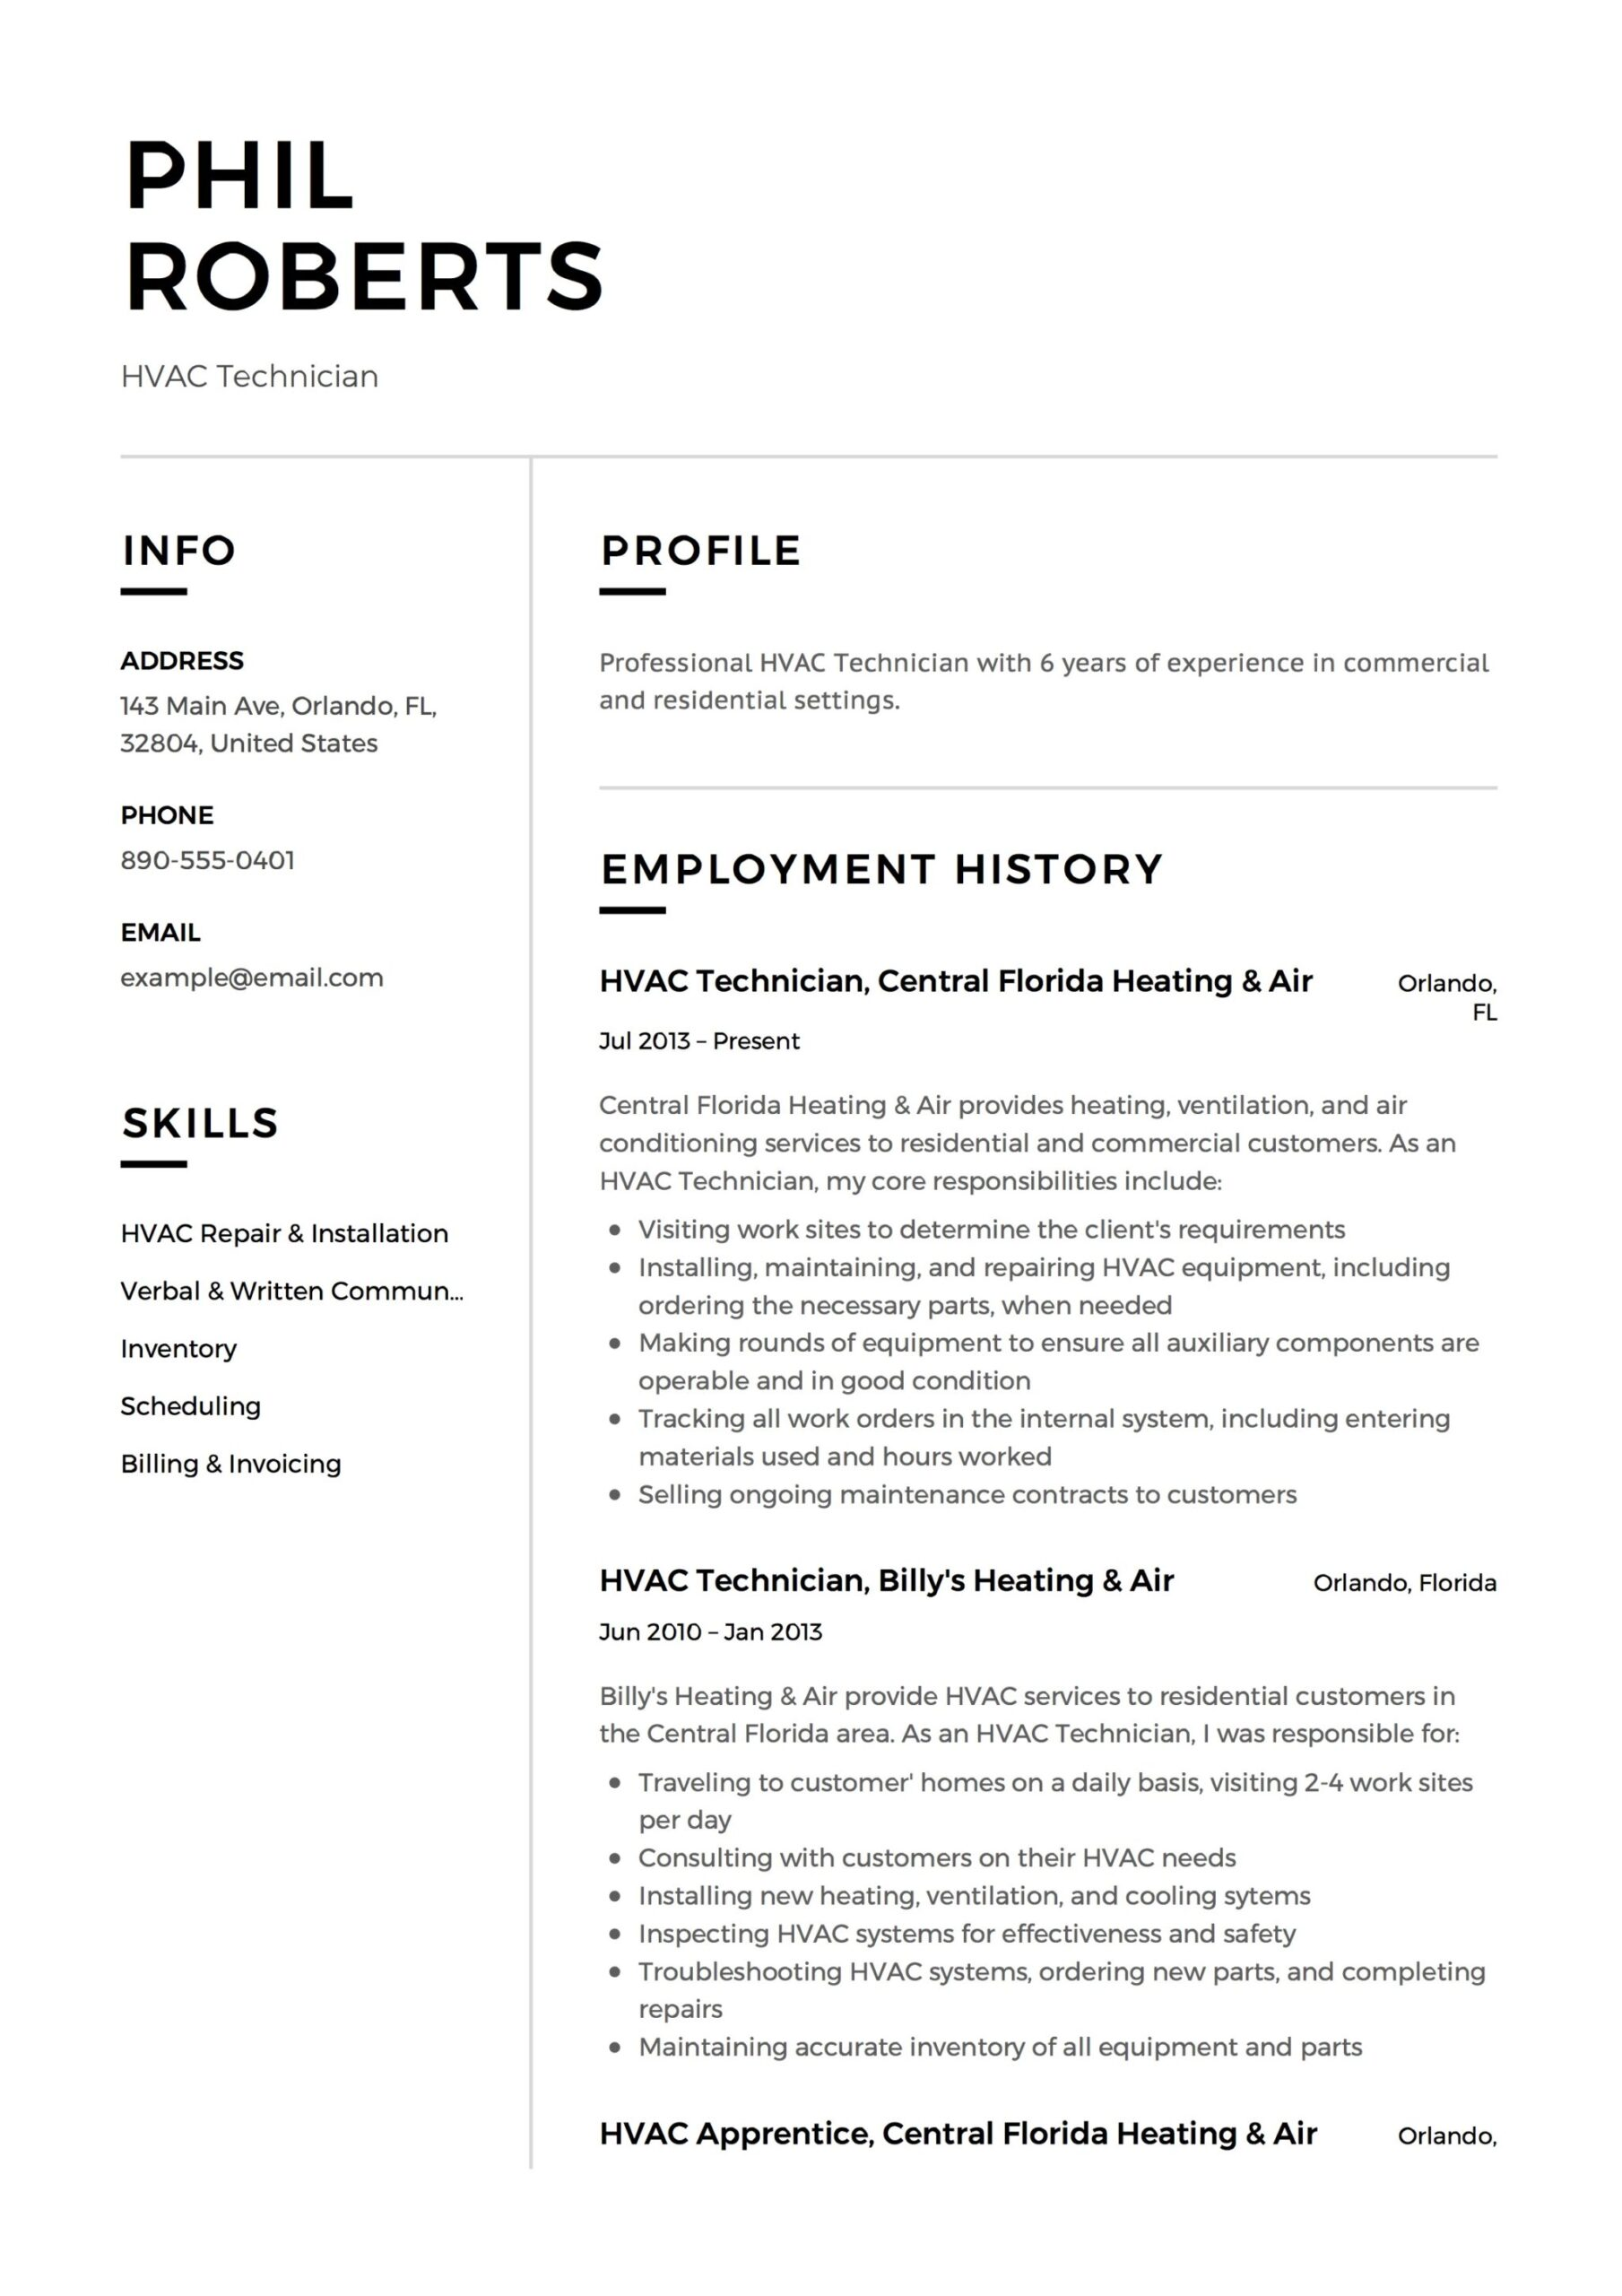 hvac technician resume guide templates pdf word for refrigeration and airconditioning Resume Resume For Refrigeration And Airconditioning Mechanic